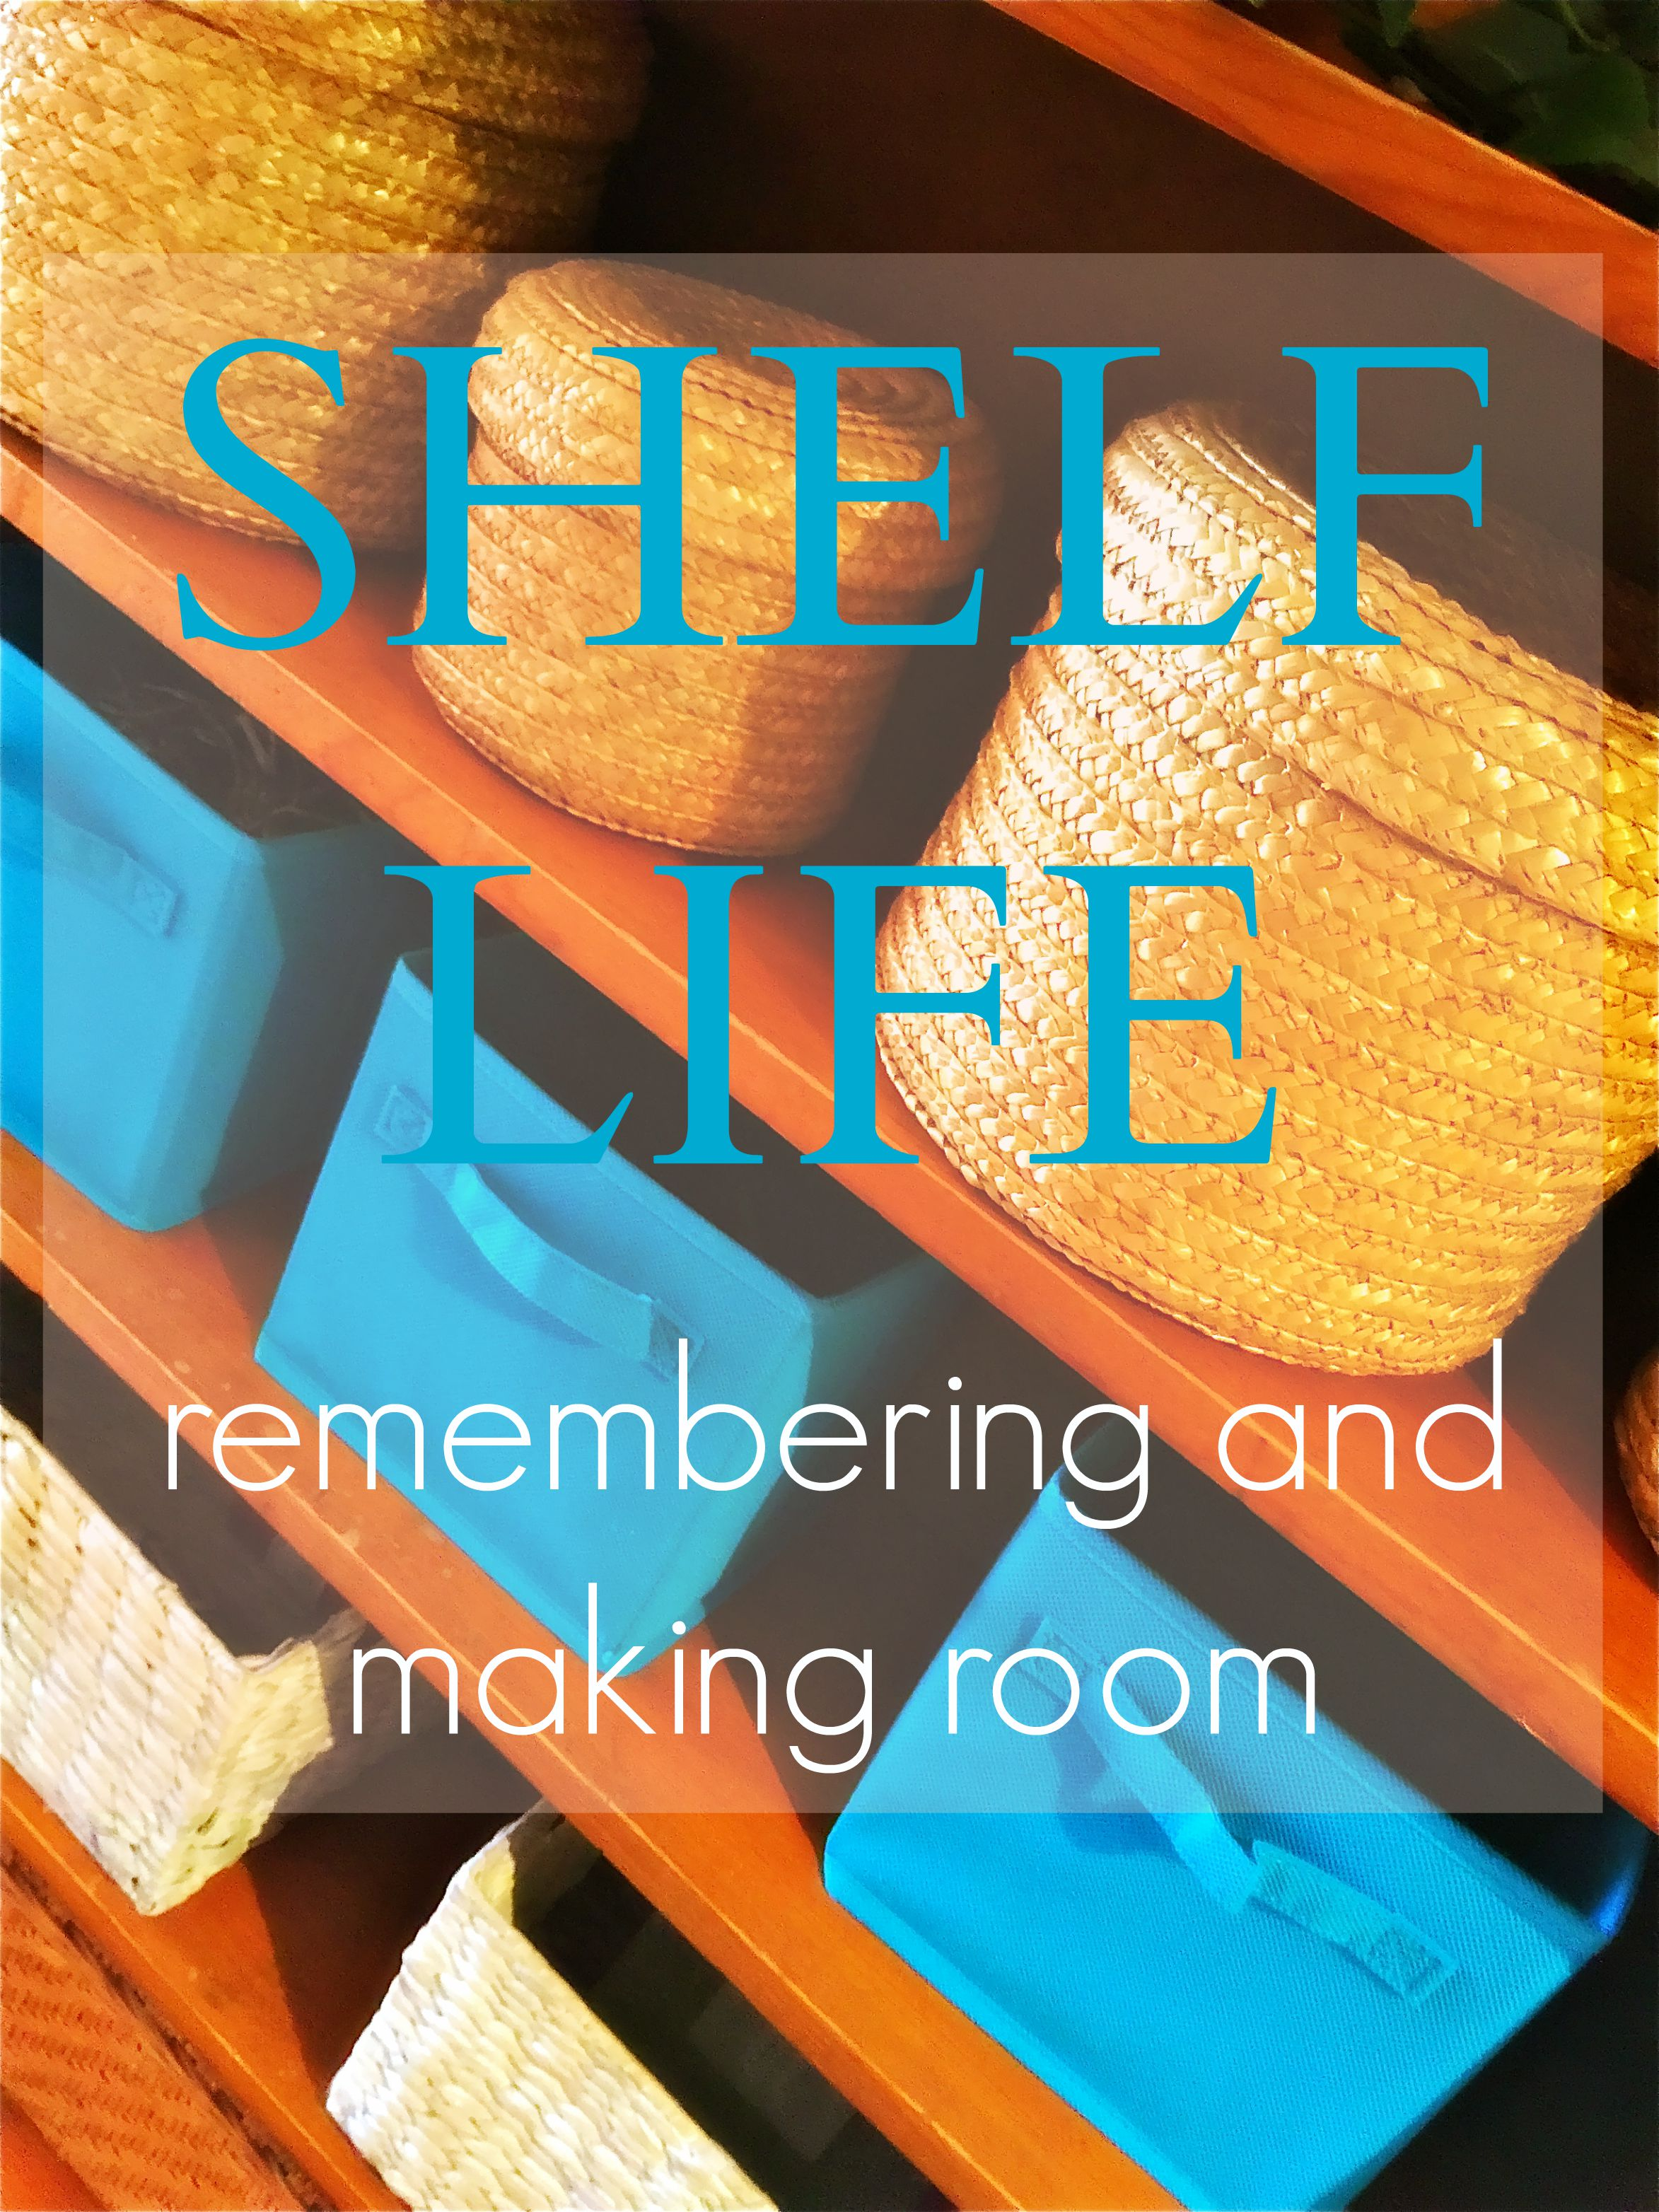 Remembering and making room - the story of a bookshelf